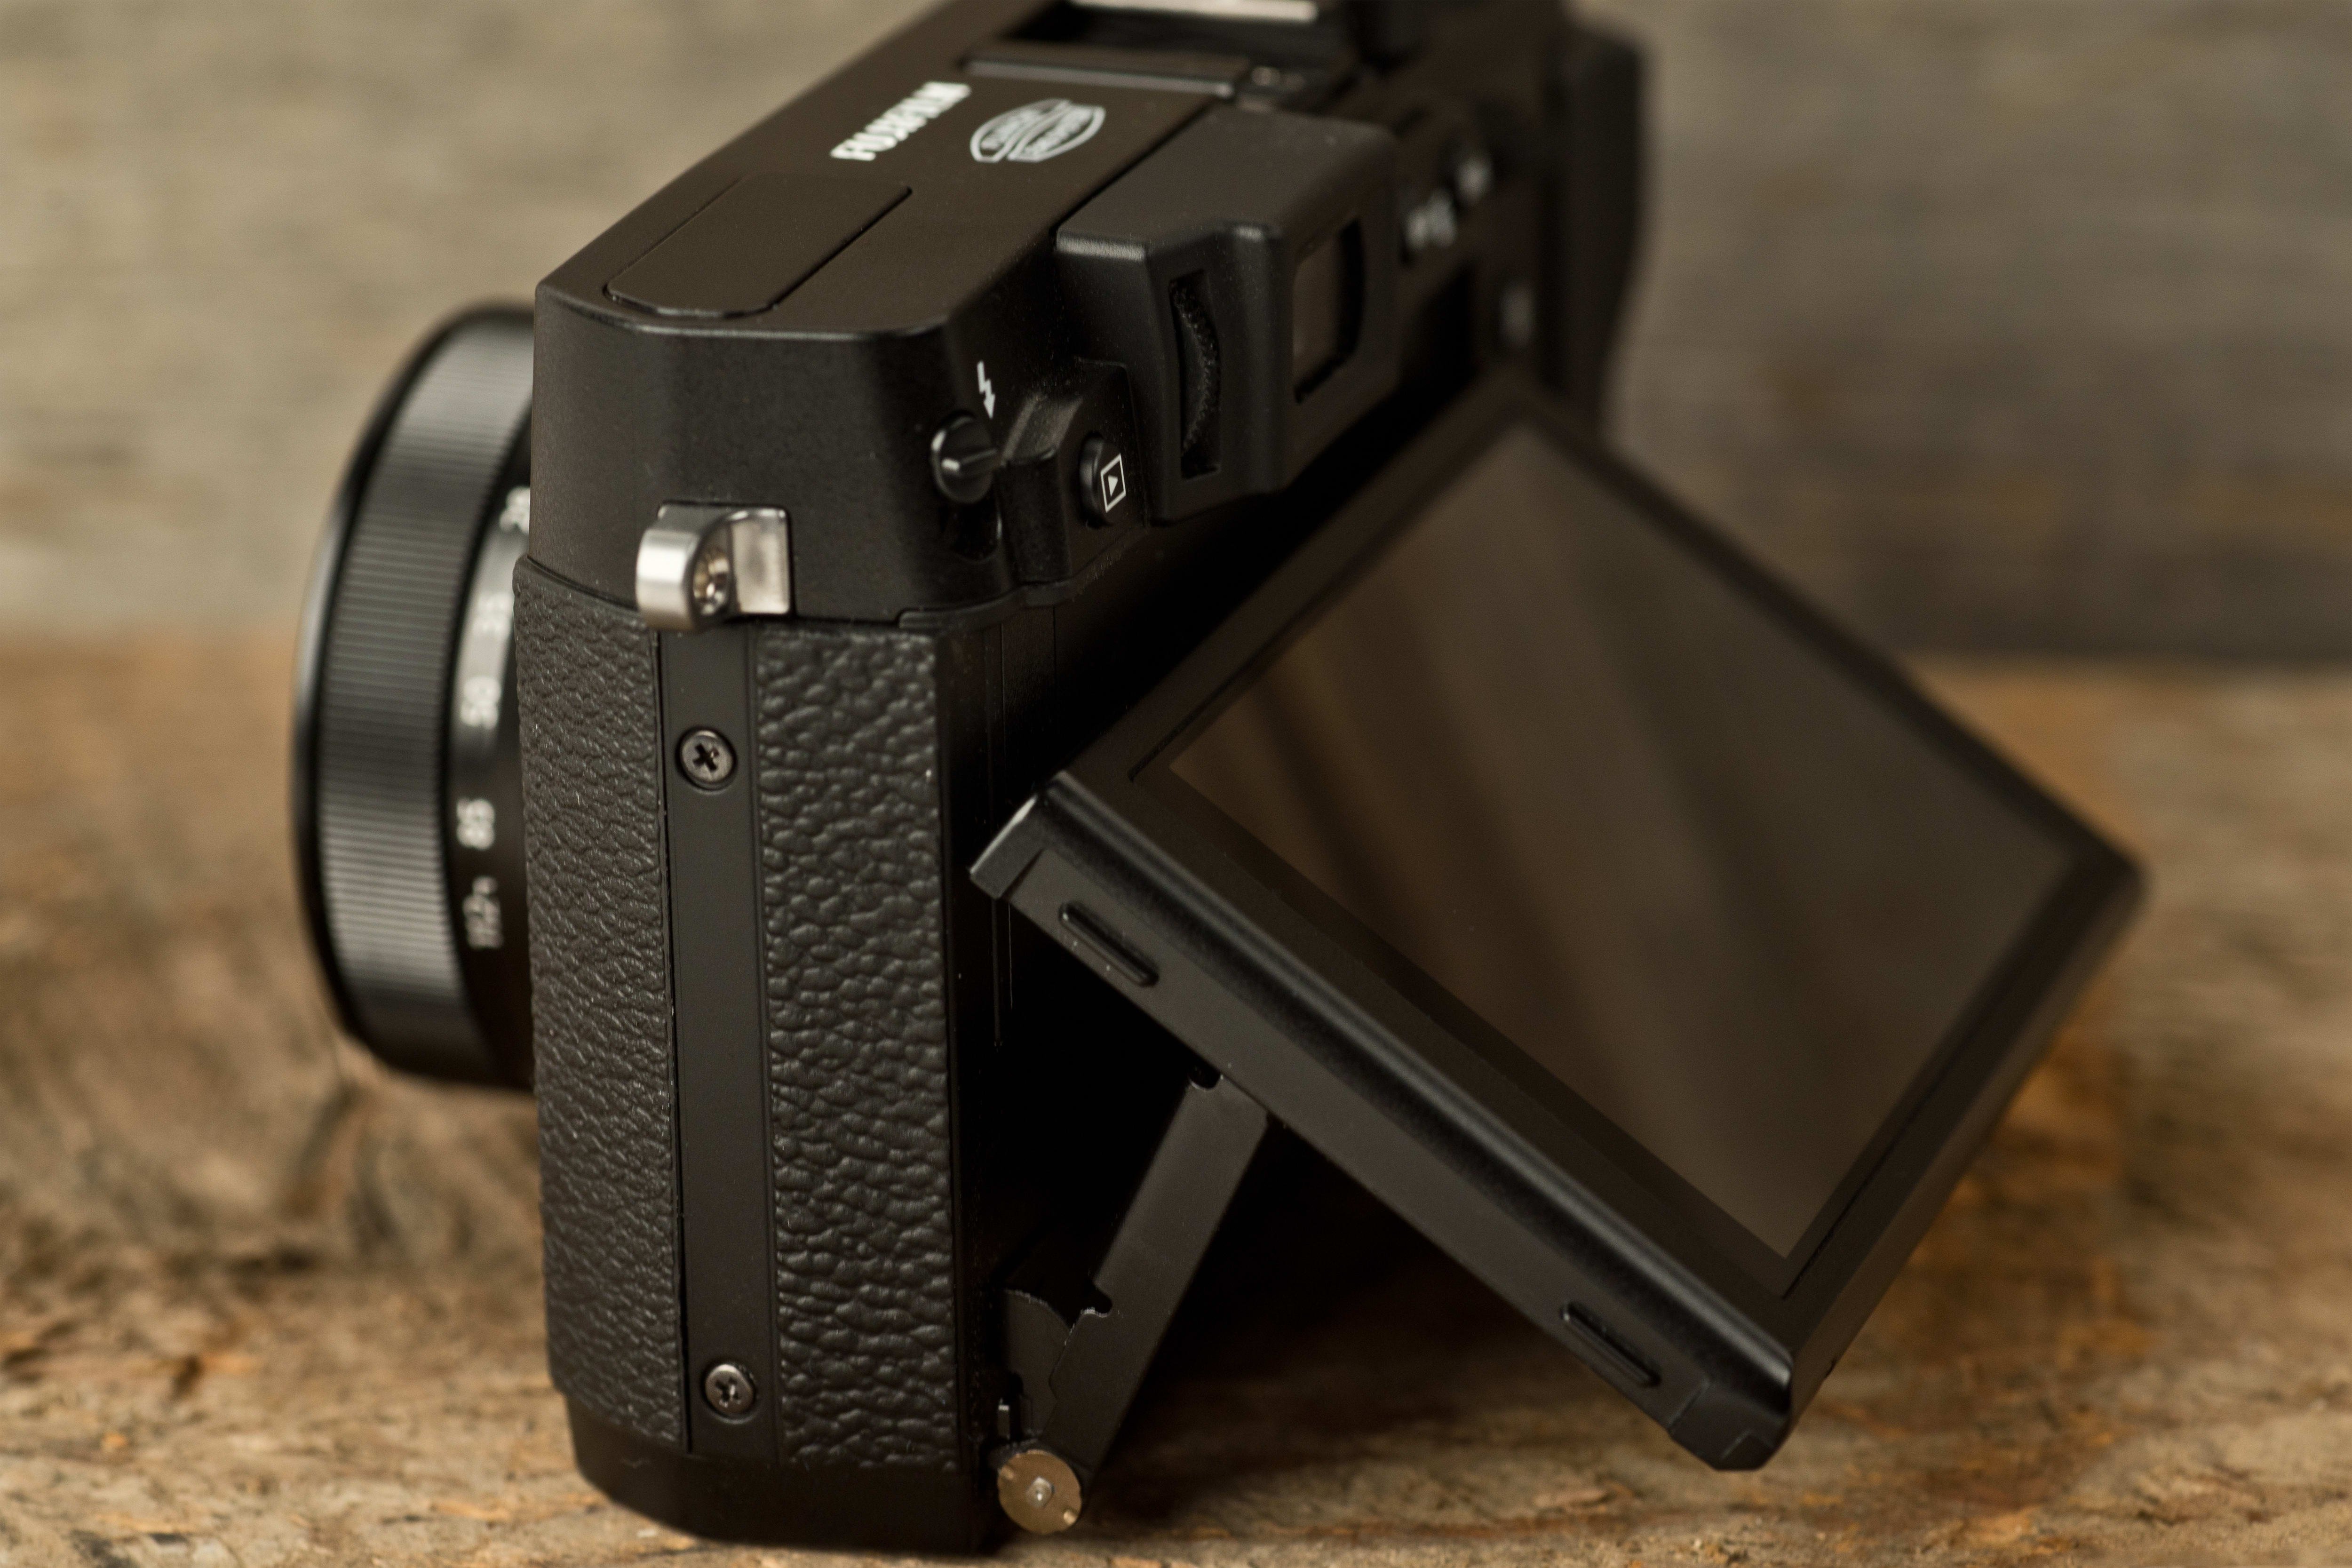 A photo of the Fujifilm X30's tilting screen.